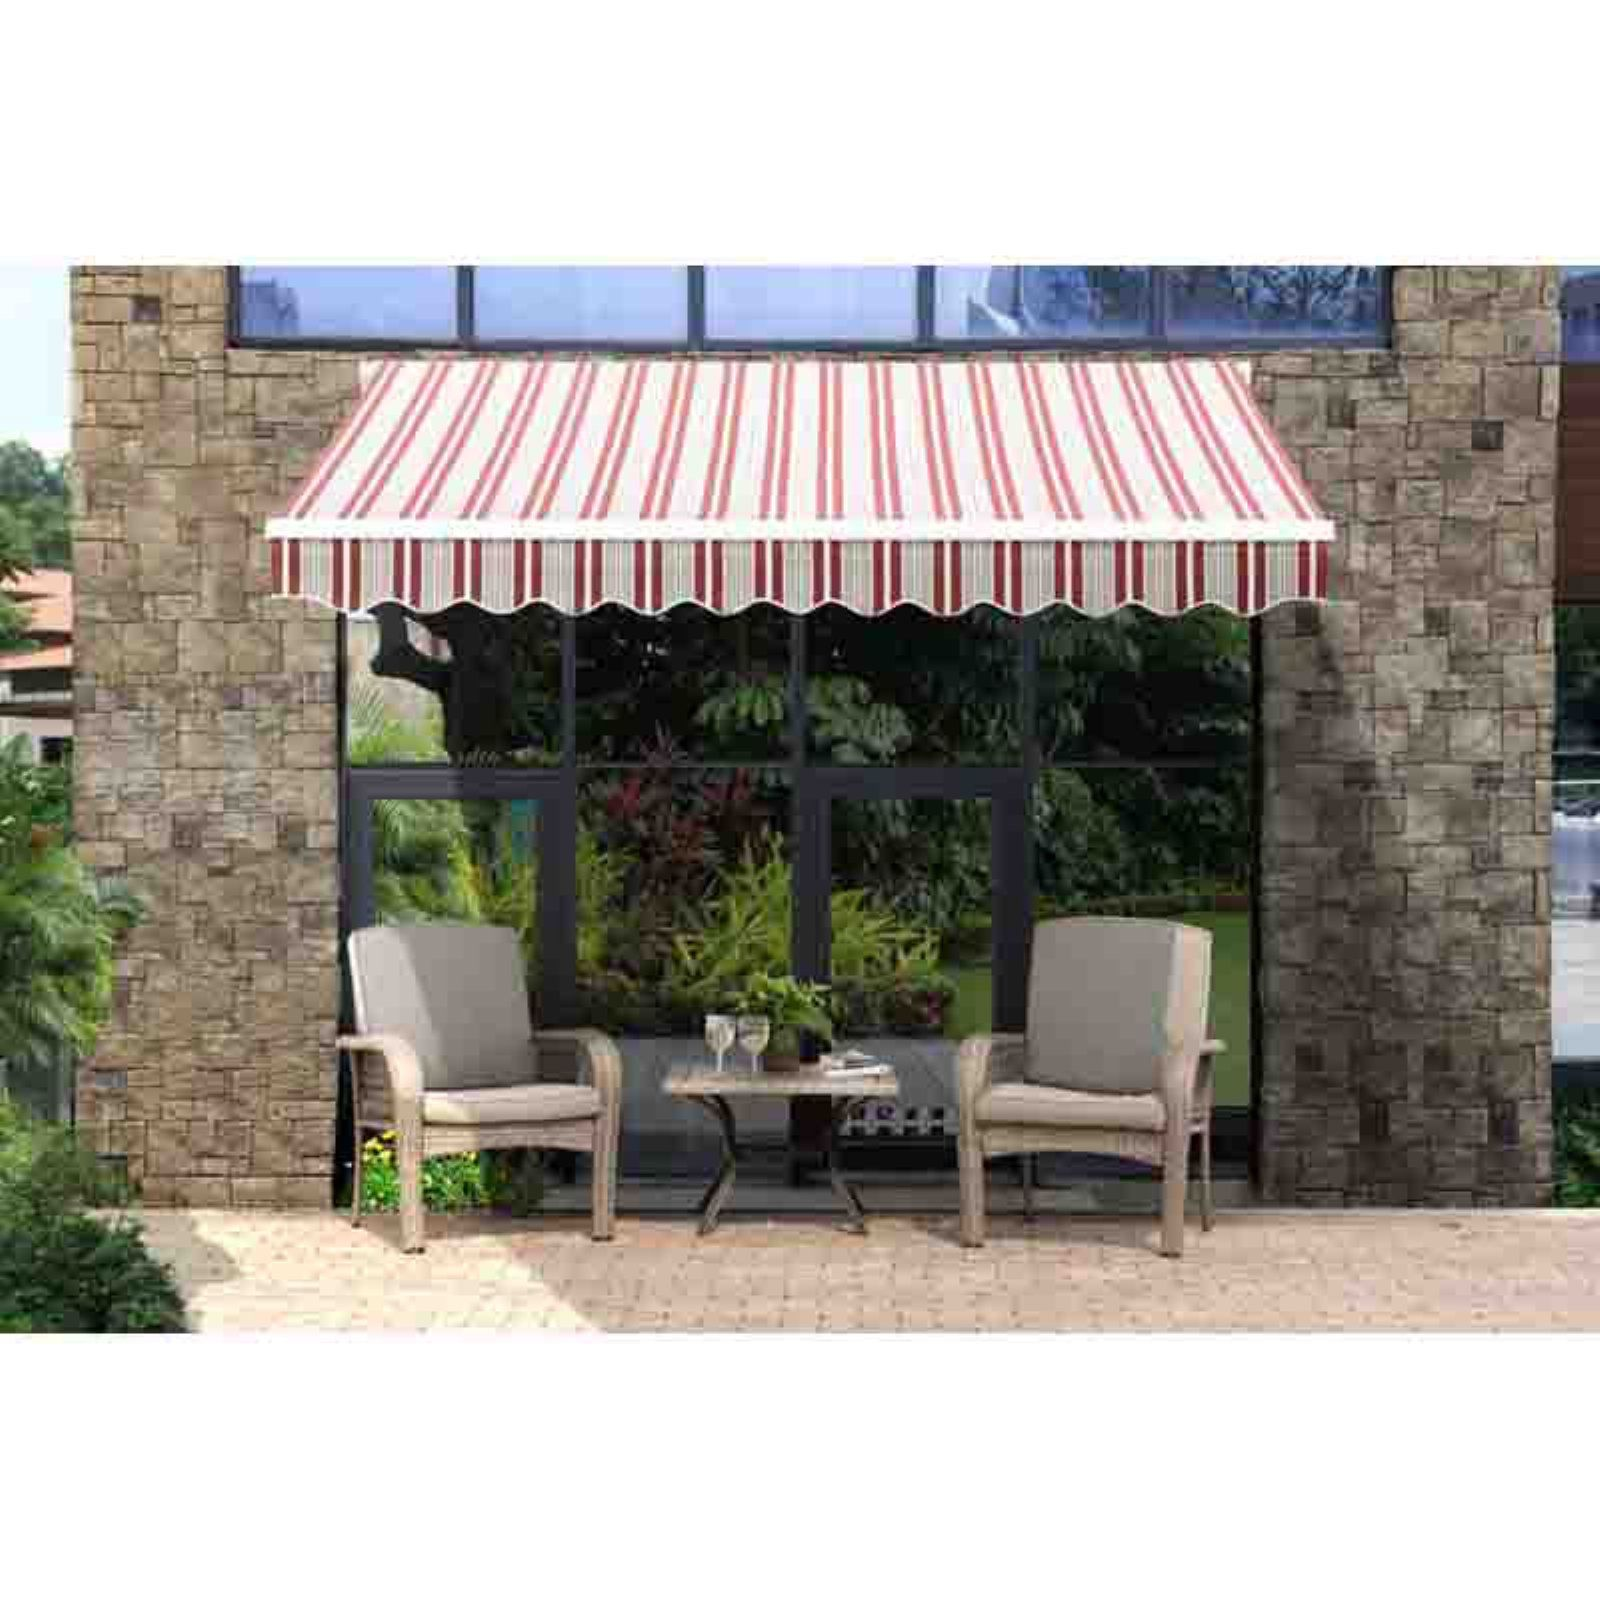 Sunjoy Classic 10 X 9 Ft Retractable Awning Striped Red Pergola Retractable Awning Outdoor Pergola